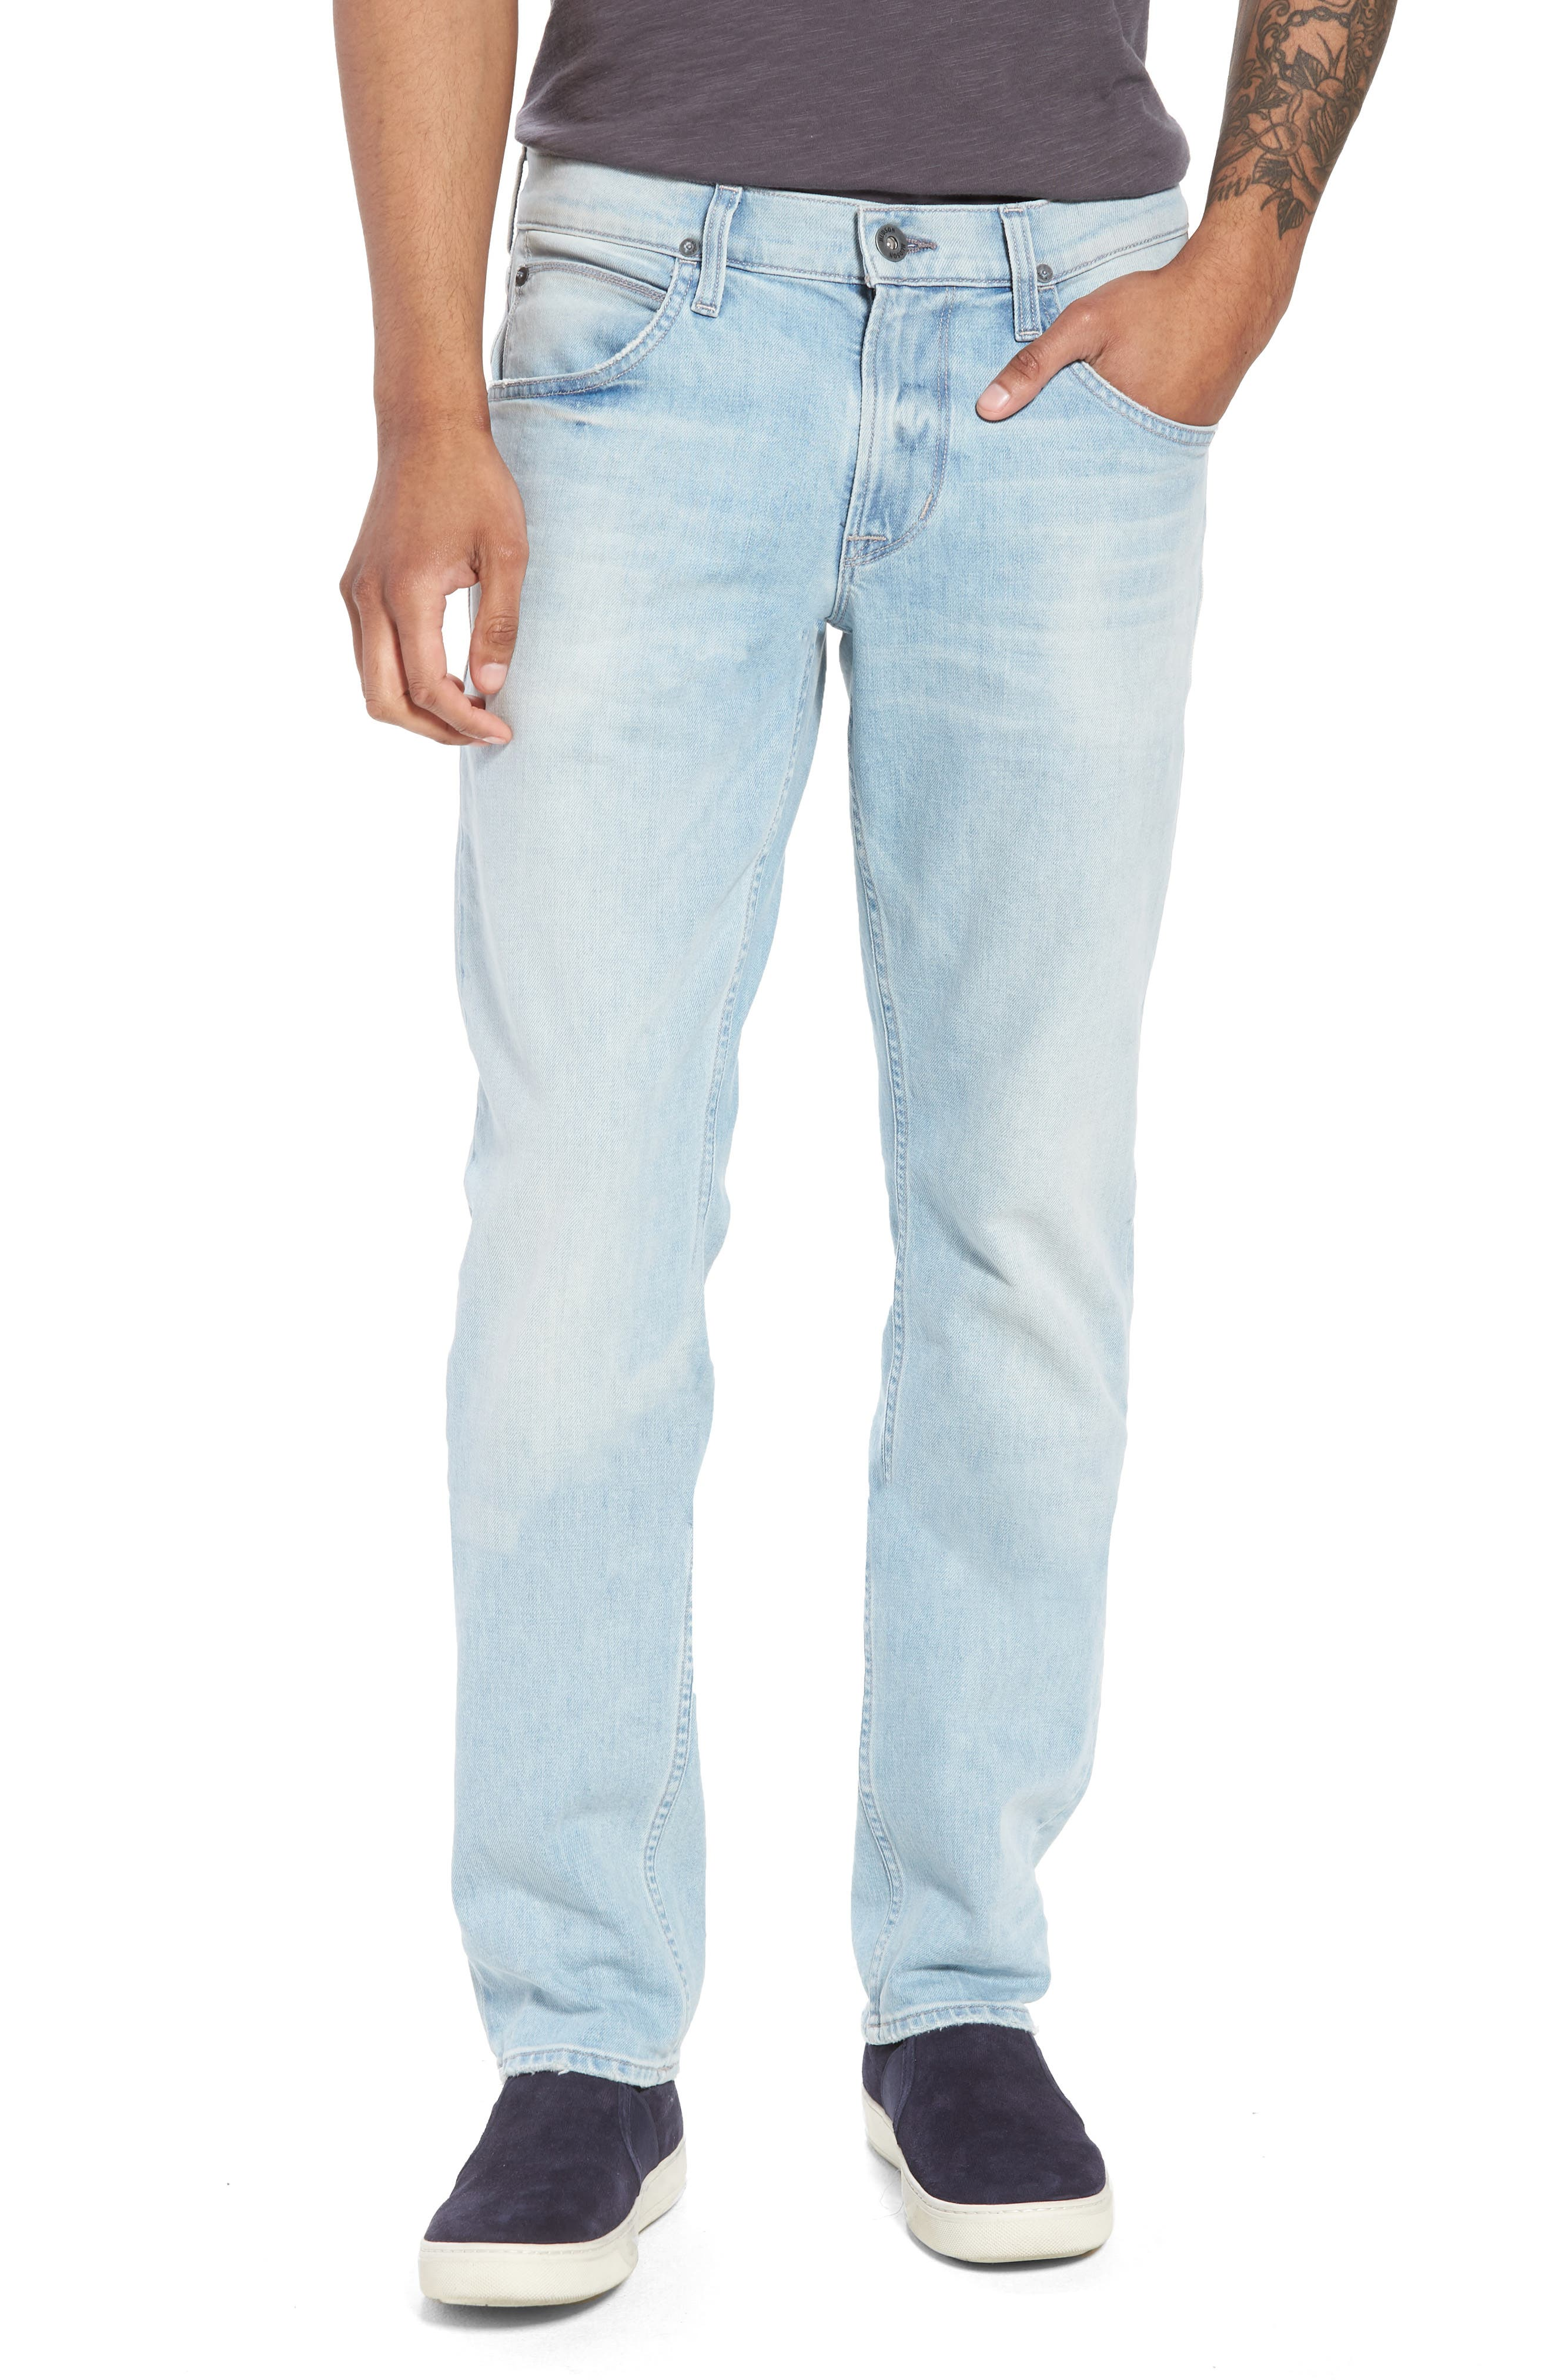 Blake Slim Fit Jeans,                             Main thumbnail 1, color,                             Rewired